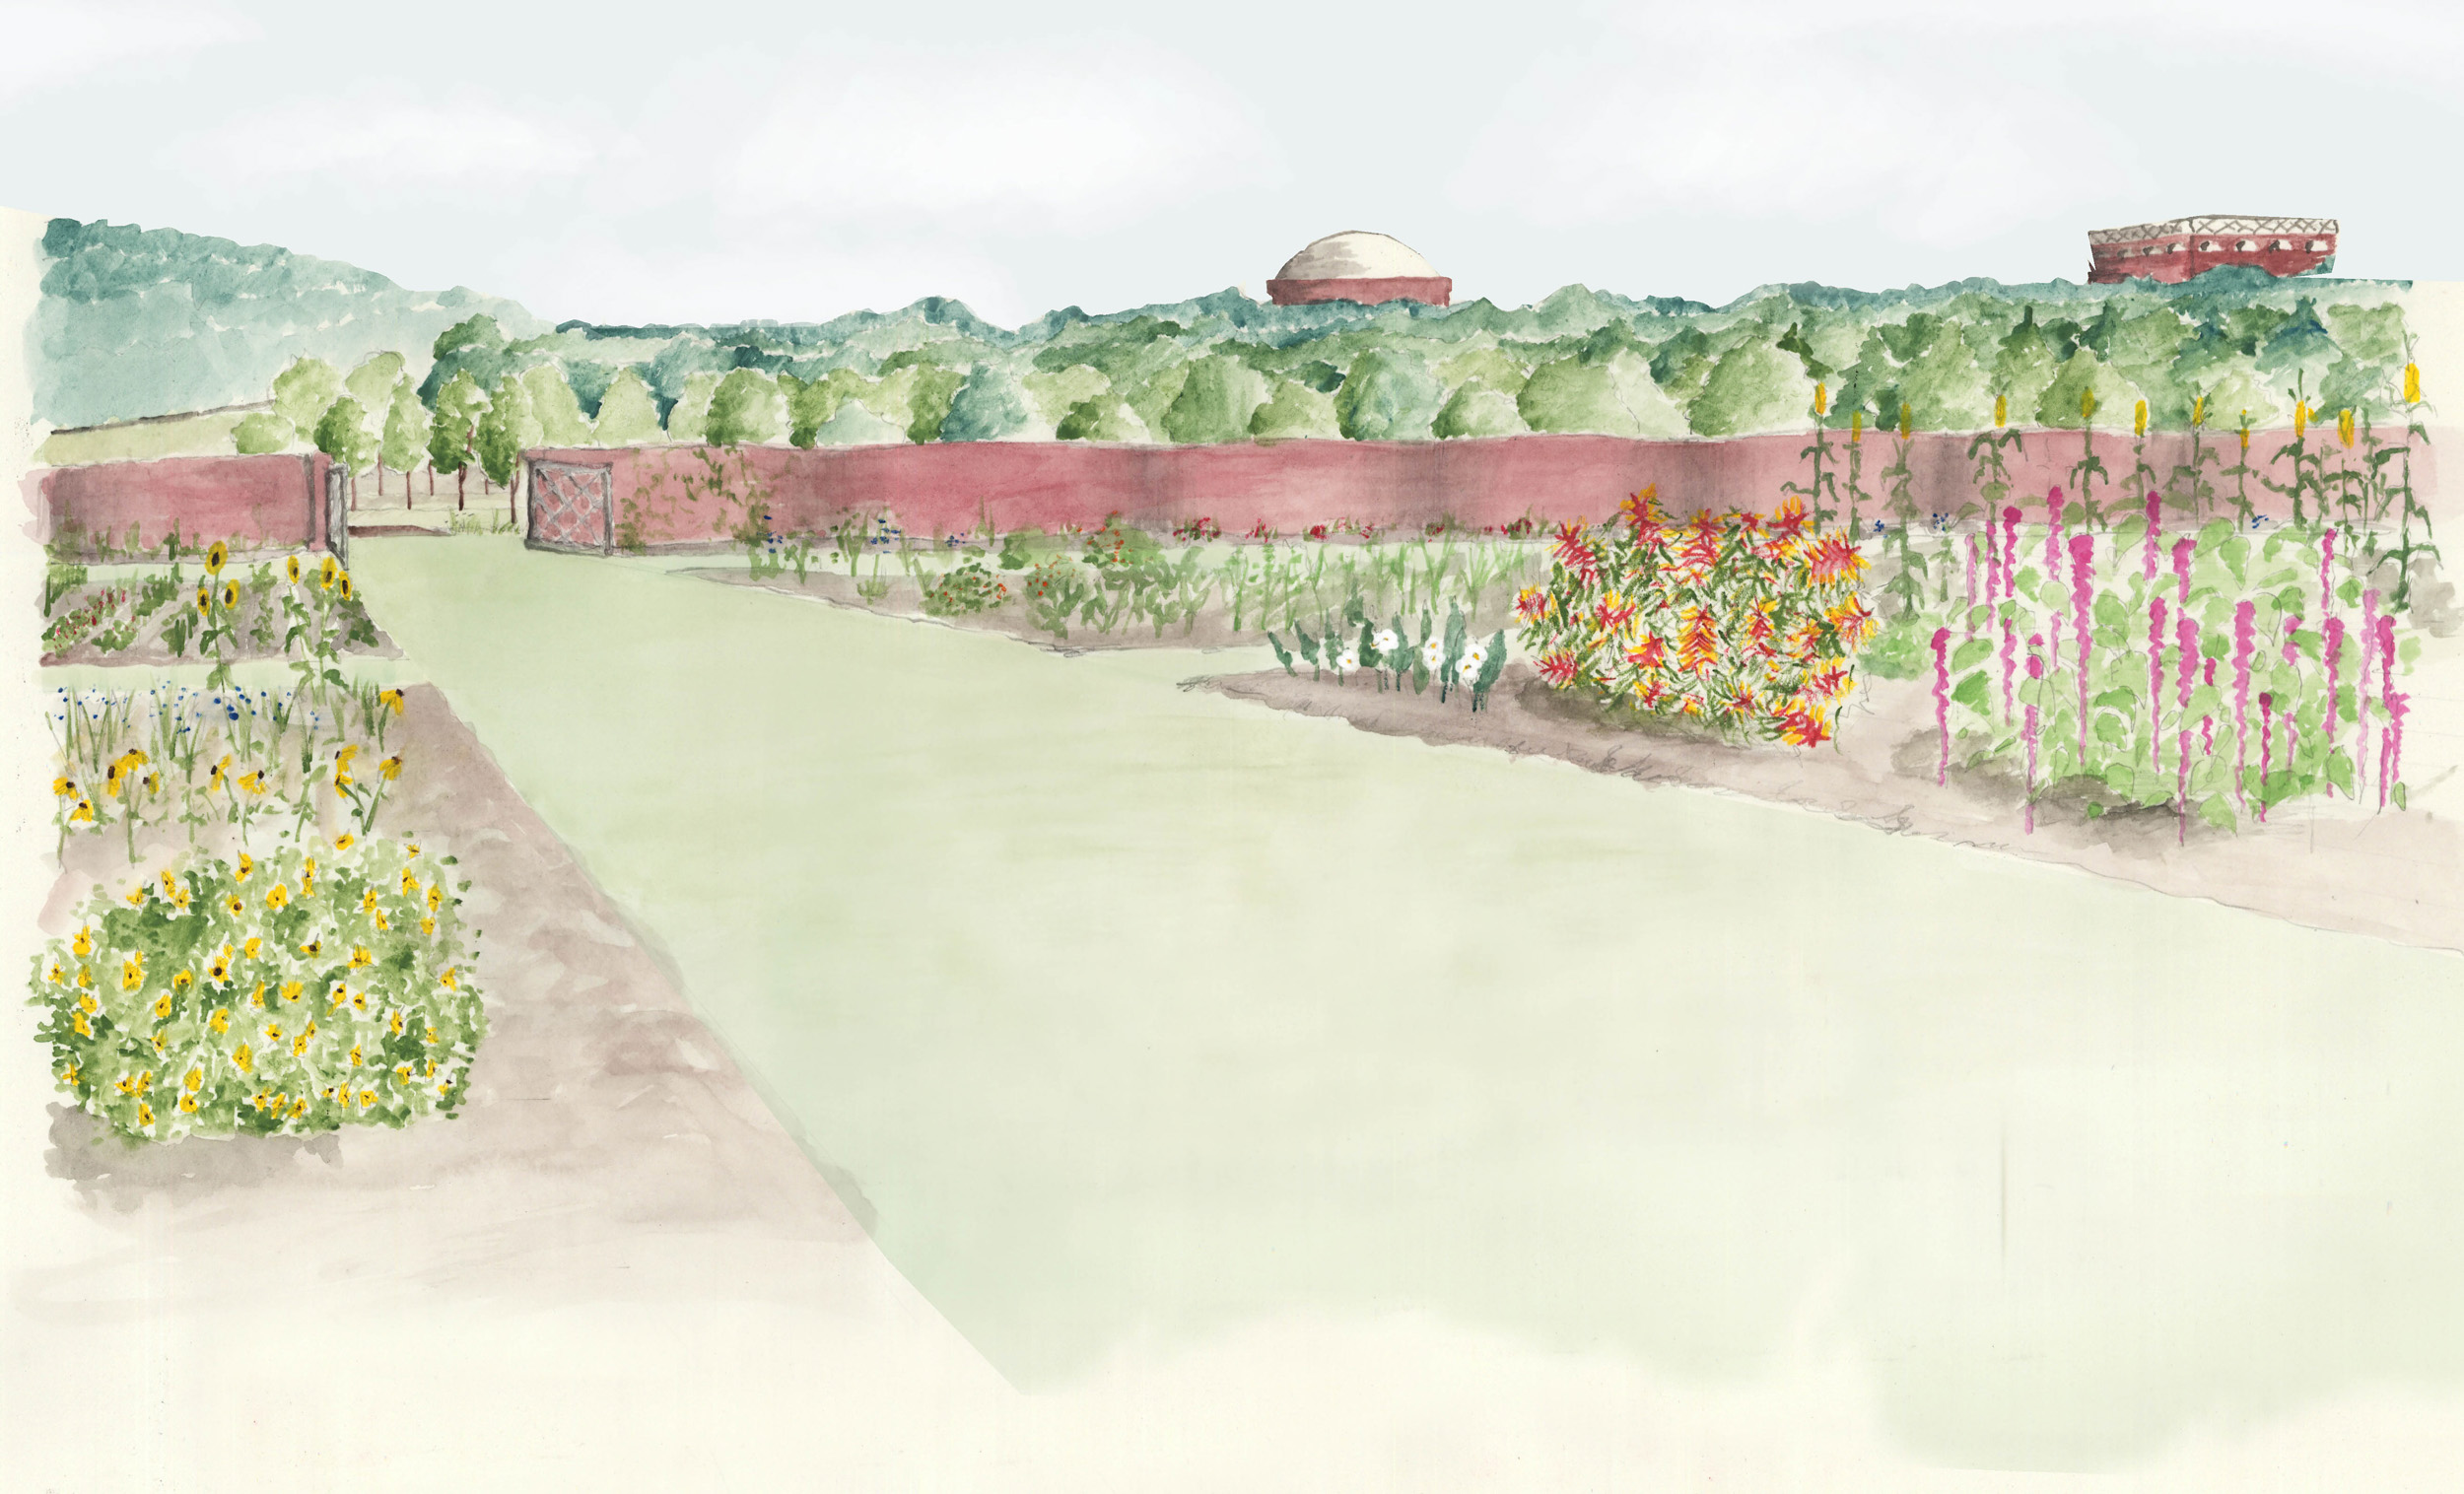 A conjectural drawing of Jefferson's botanical garden, used with permission from UVA alumna Jenny Jones, who earned a Master of Landscape Architecture degree in 2010, for fellow grad student Lily Fox-Bruguiere's 2010 master's thesis.